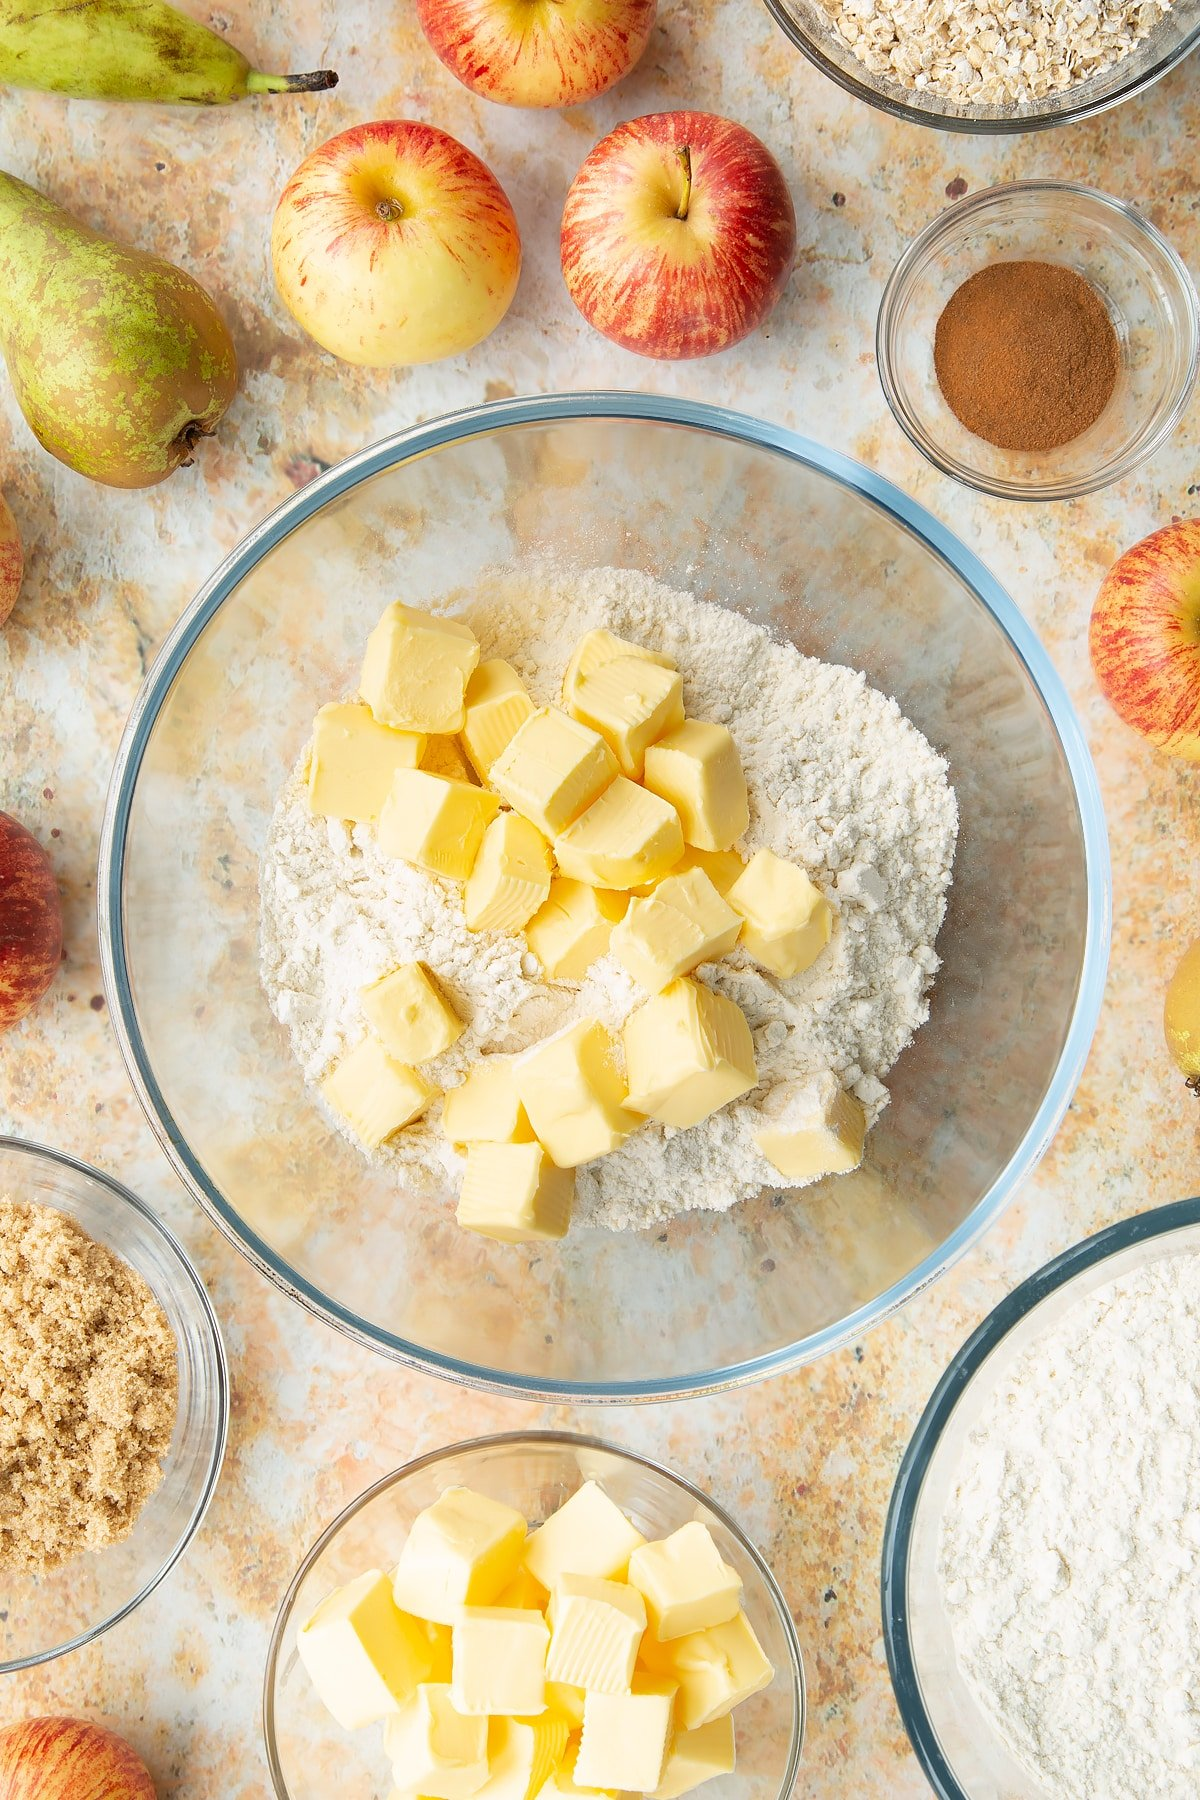 Flour and cold cubed butter in a mixing bowl. Ingredients to make easy apple pear crumble surround the bowl.